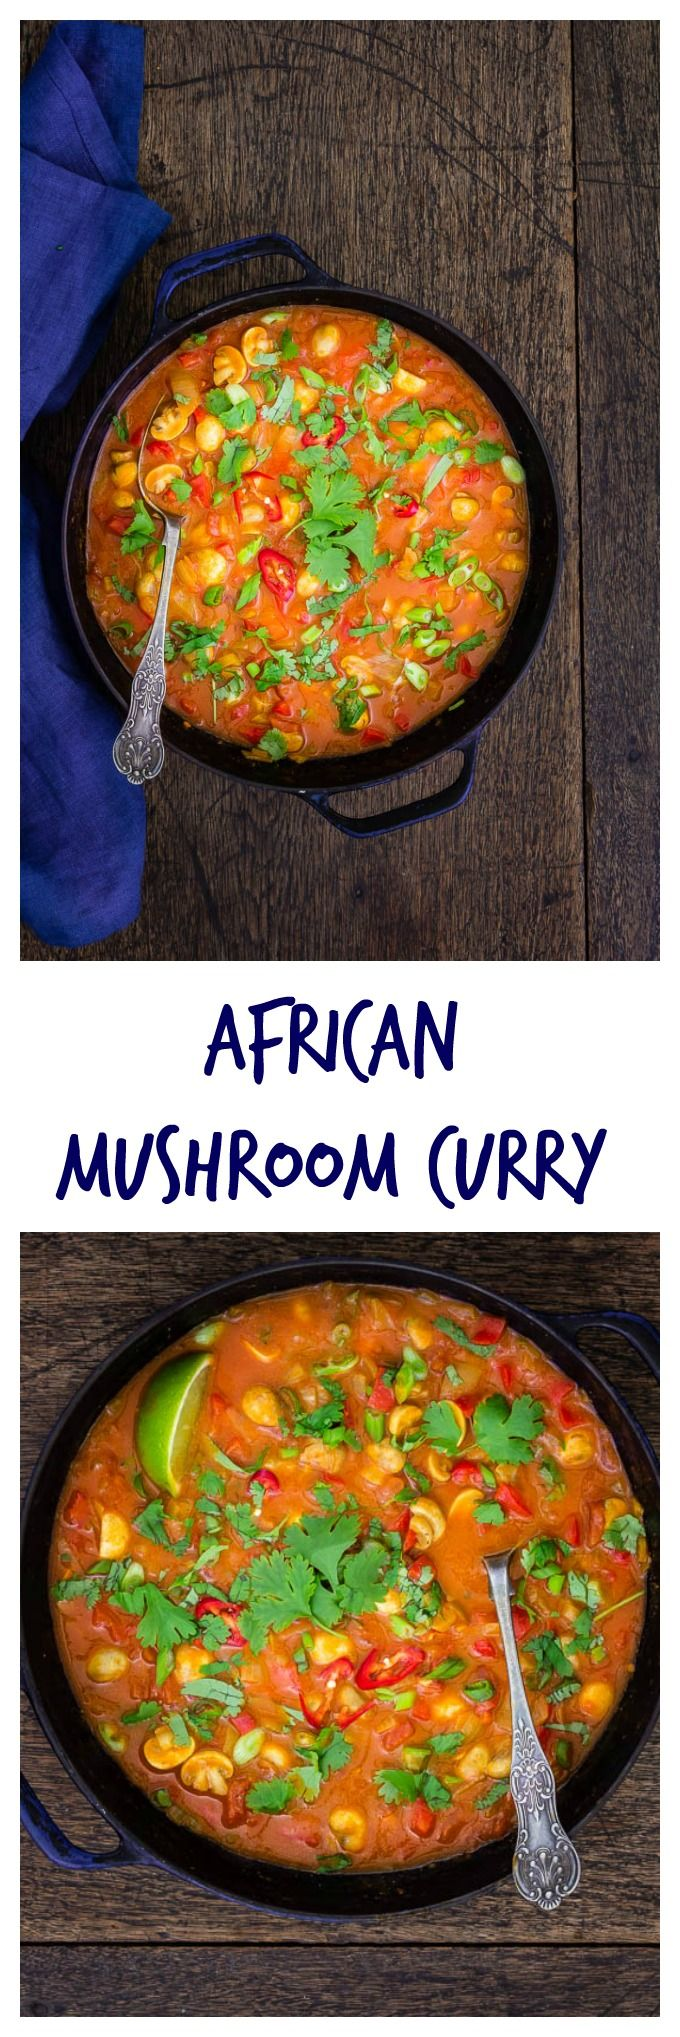 629 best all about the african cuisine images on pinterest african african mushroom curry recipes from a pantry forumfinder Image collections